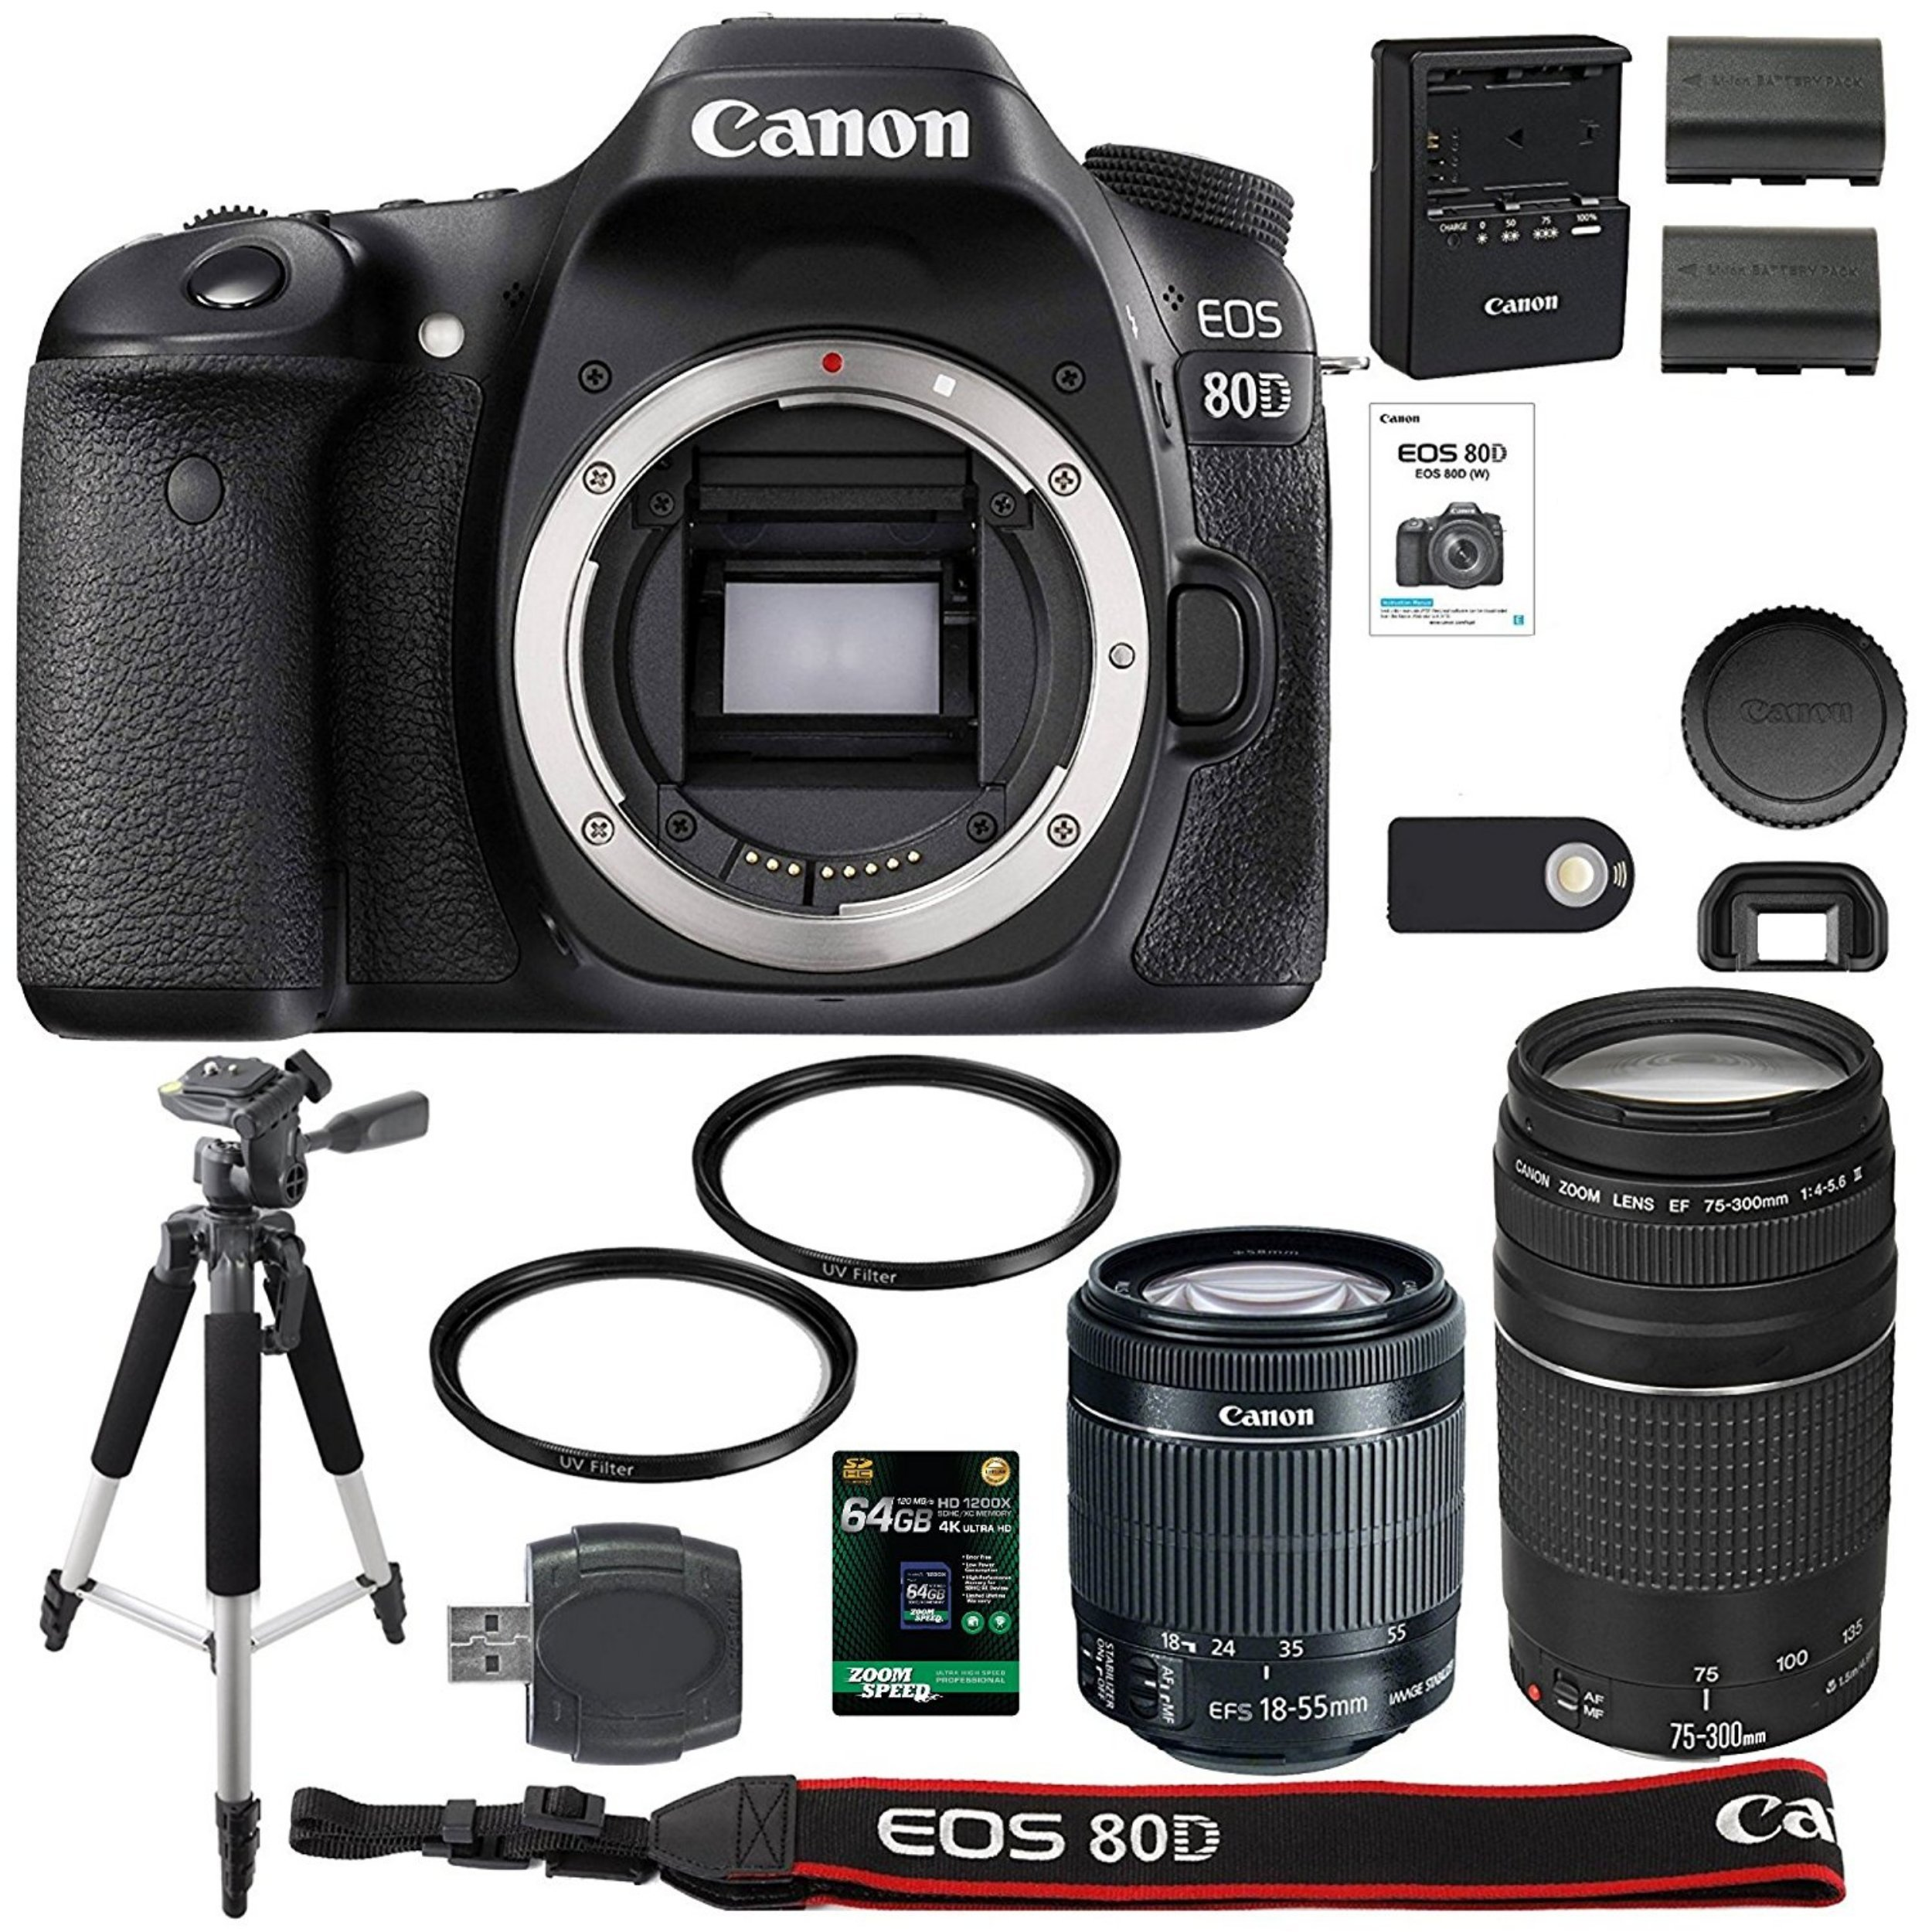 Canon EOS 80D Digital SLR Camera + 18-55mm STM + Canon 75-300mm III Lens + SD Card Reader + 64gb SDXC + Remote + Spare Battery + Accessory Bundle - International Version by AOM